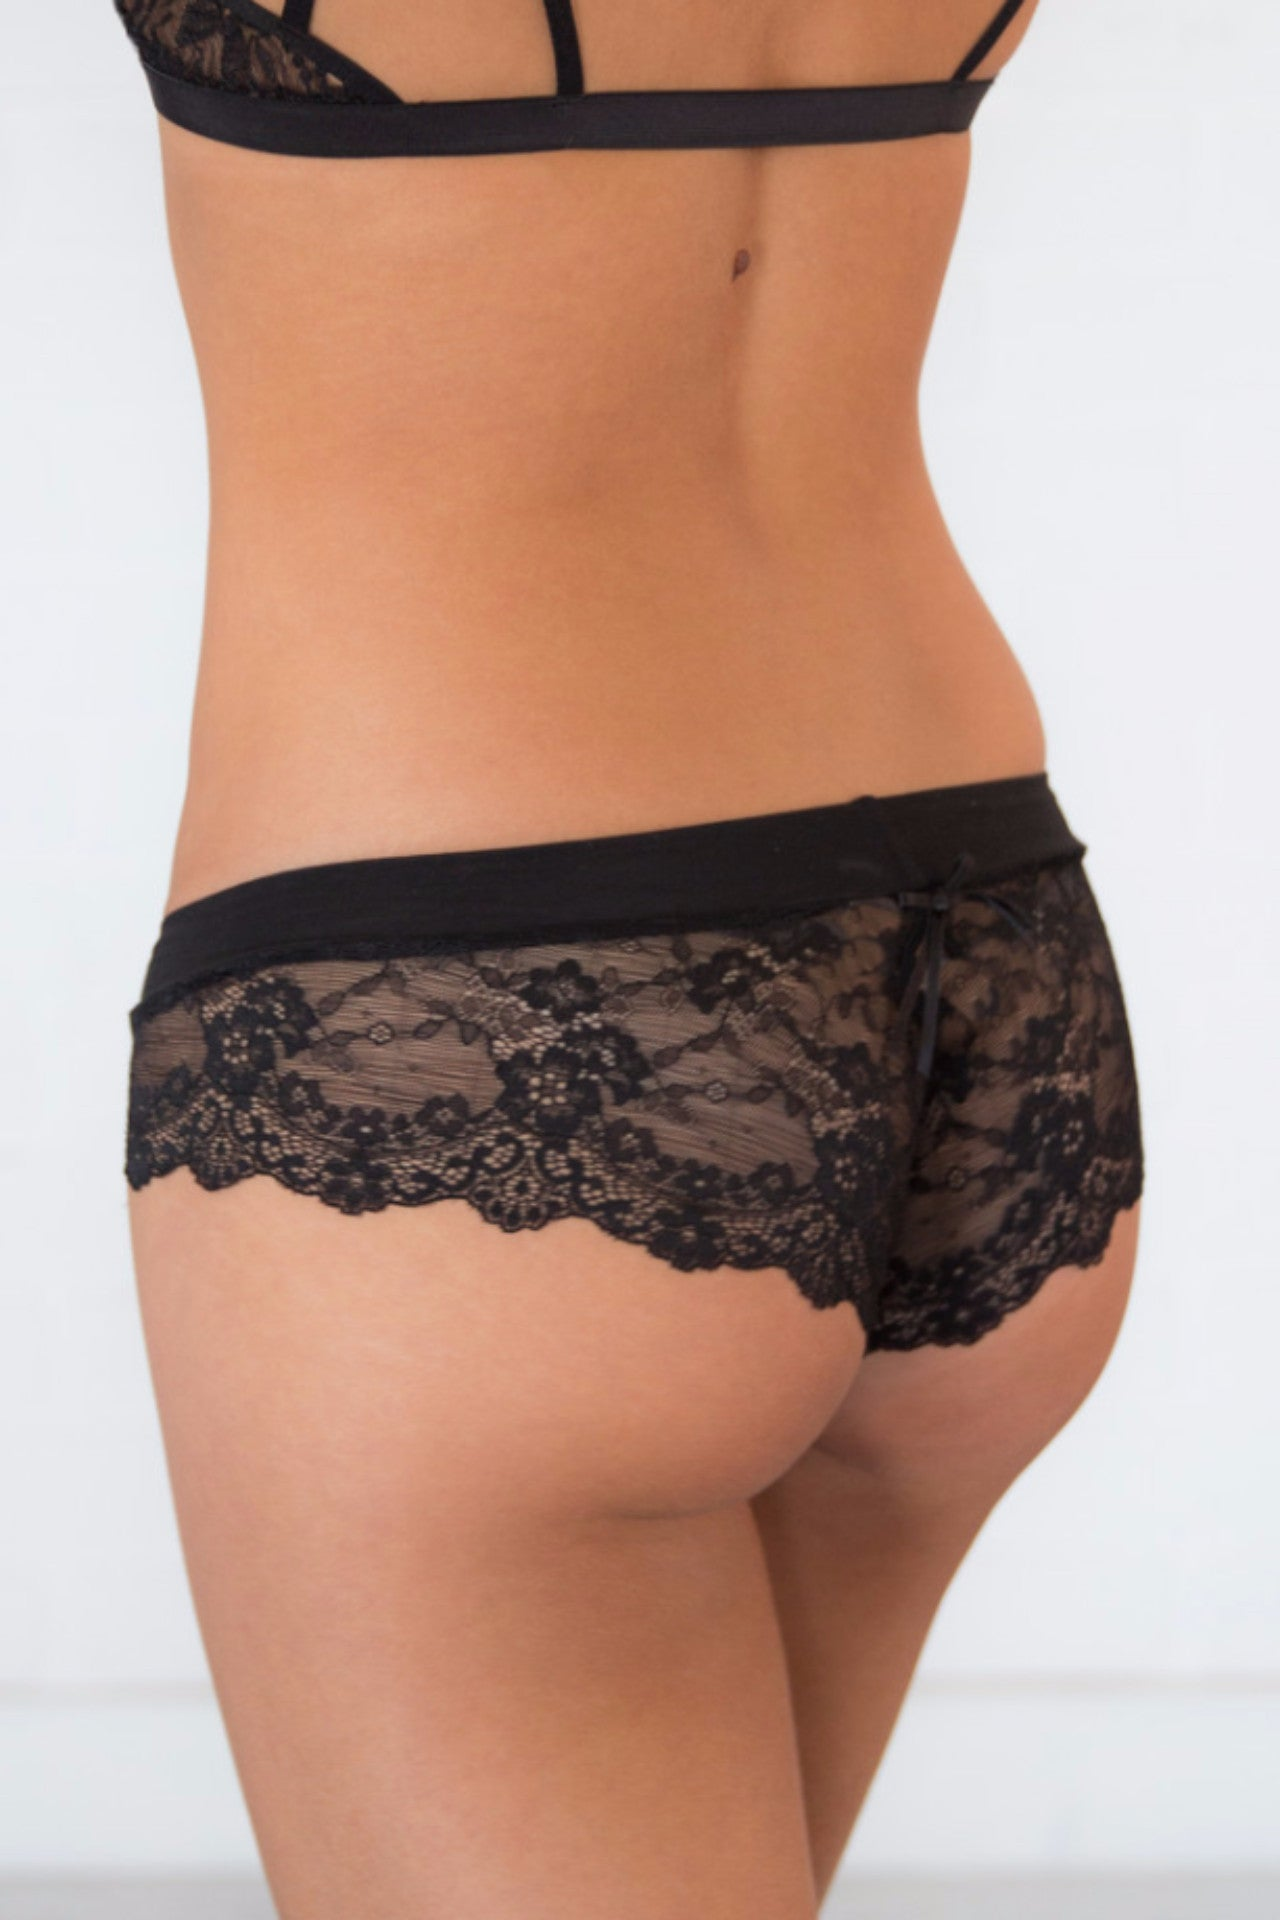 Chandelier Undies - Black